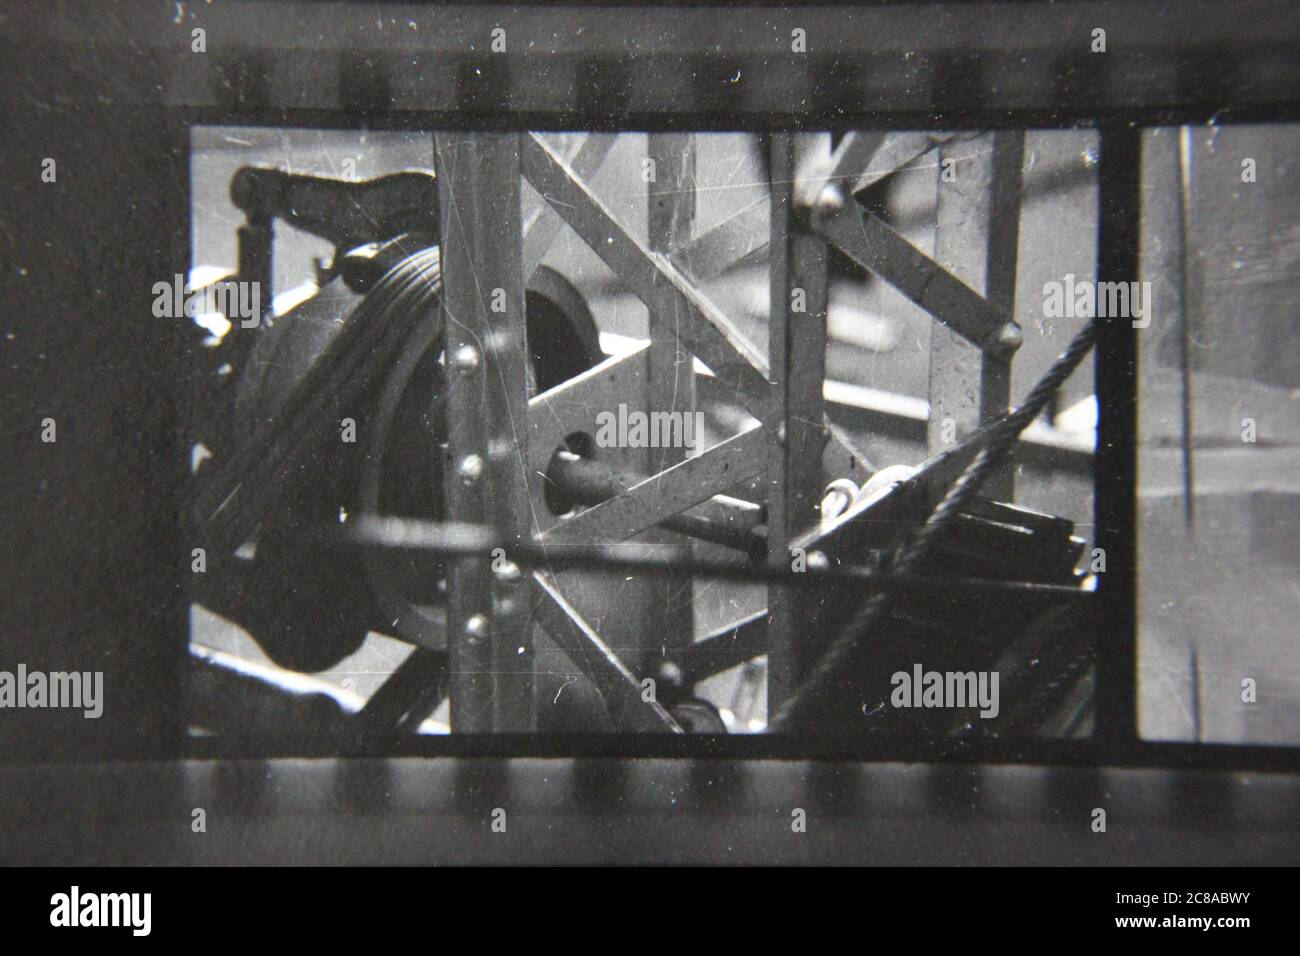 Fine 70s vintage contact print black and white photography of metal scaffold framework. Stock Photo